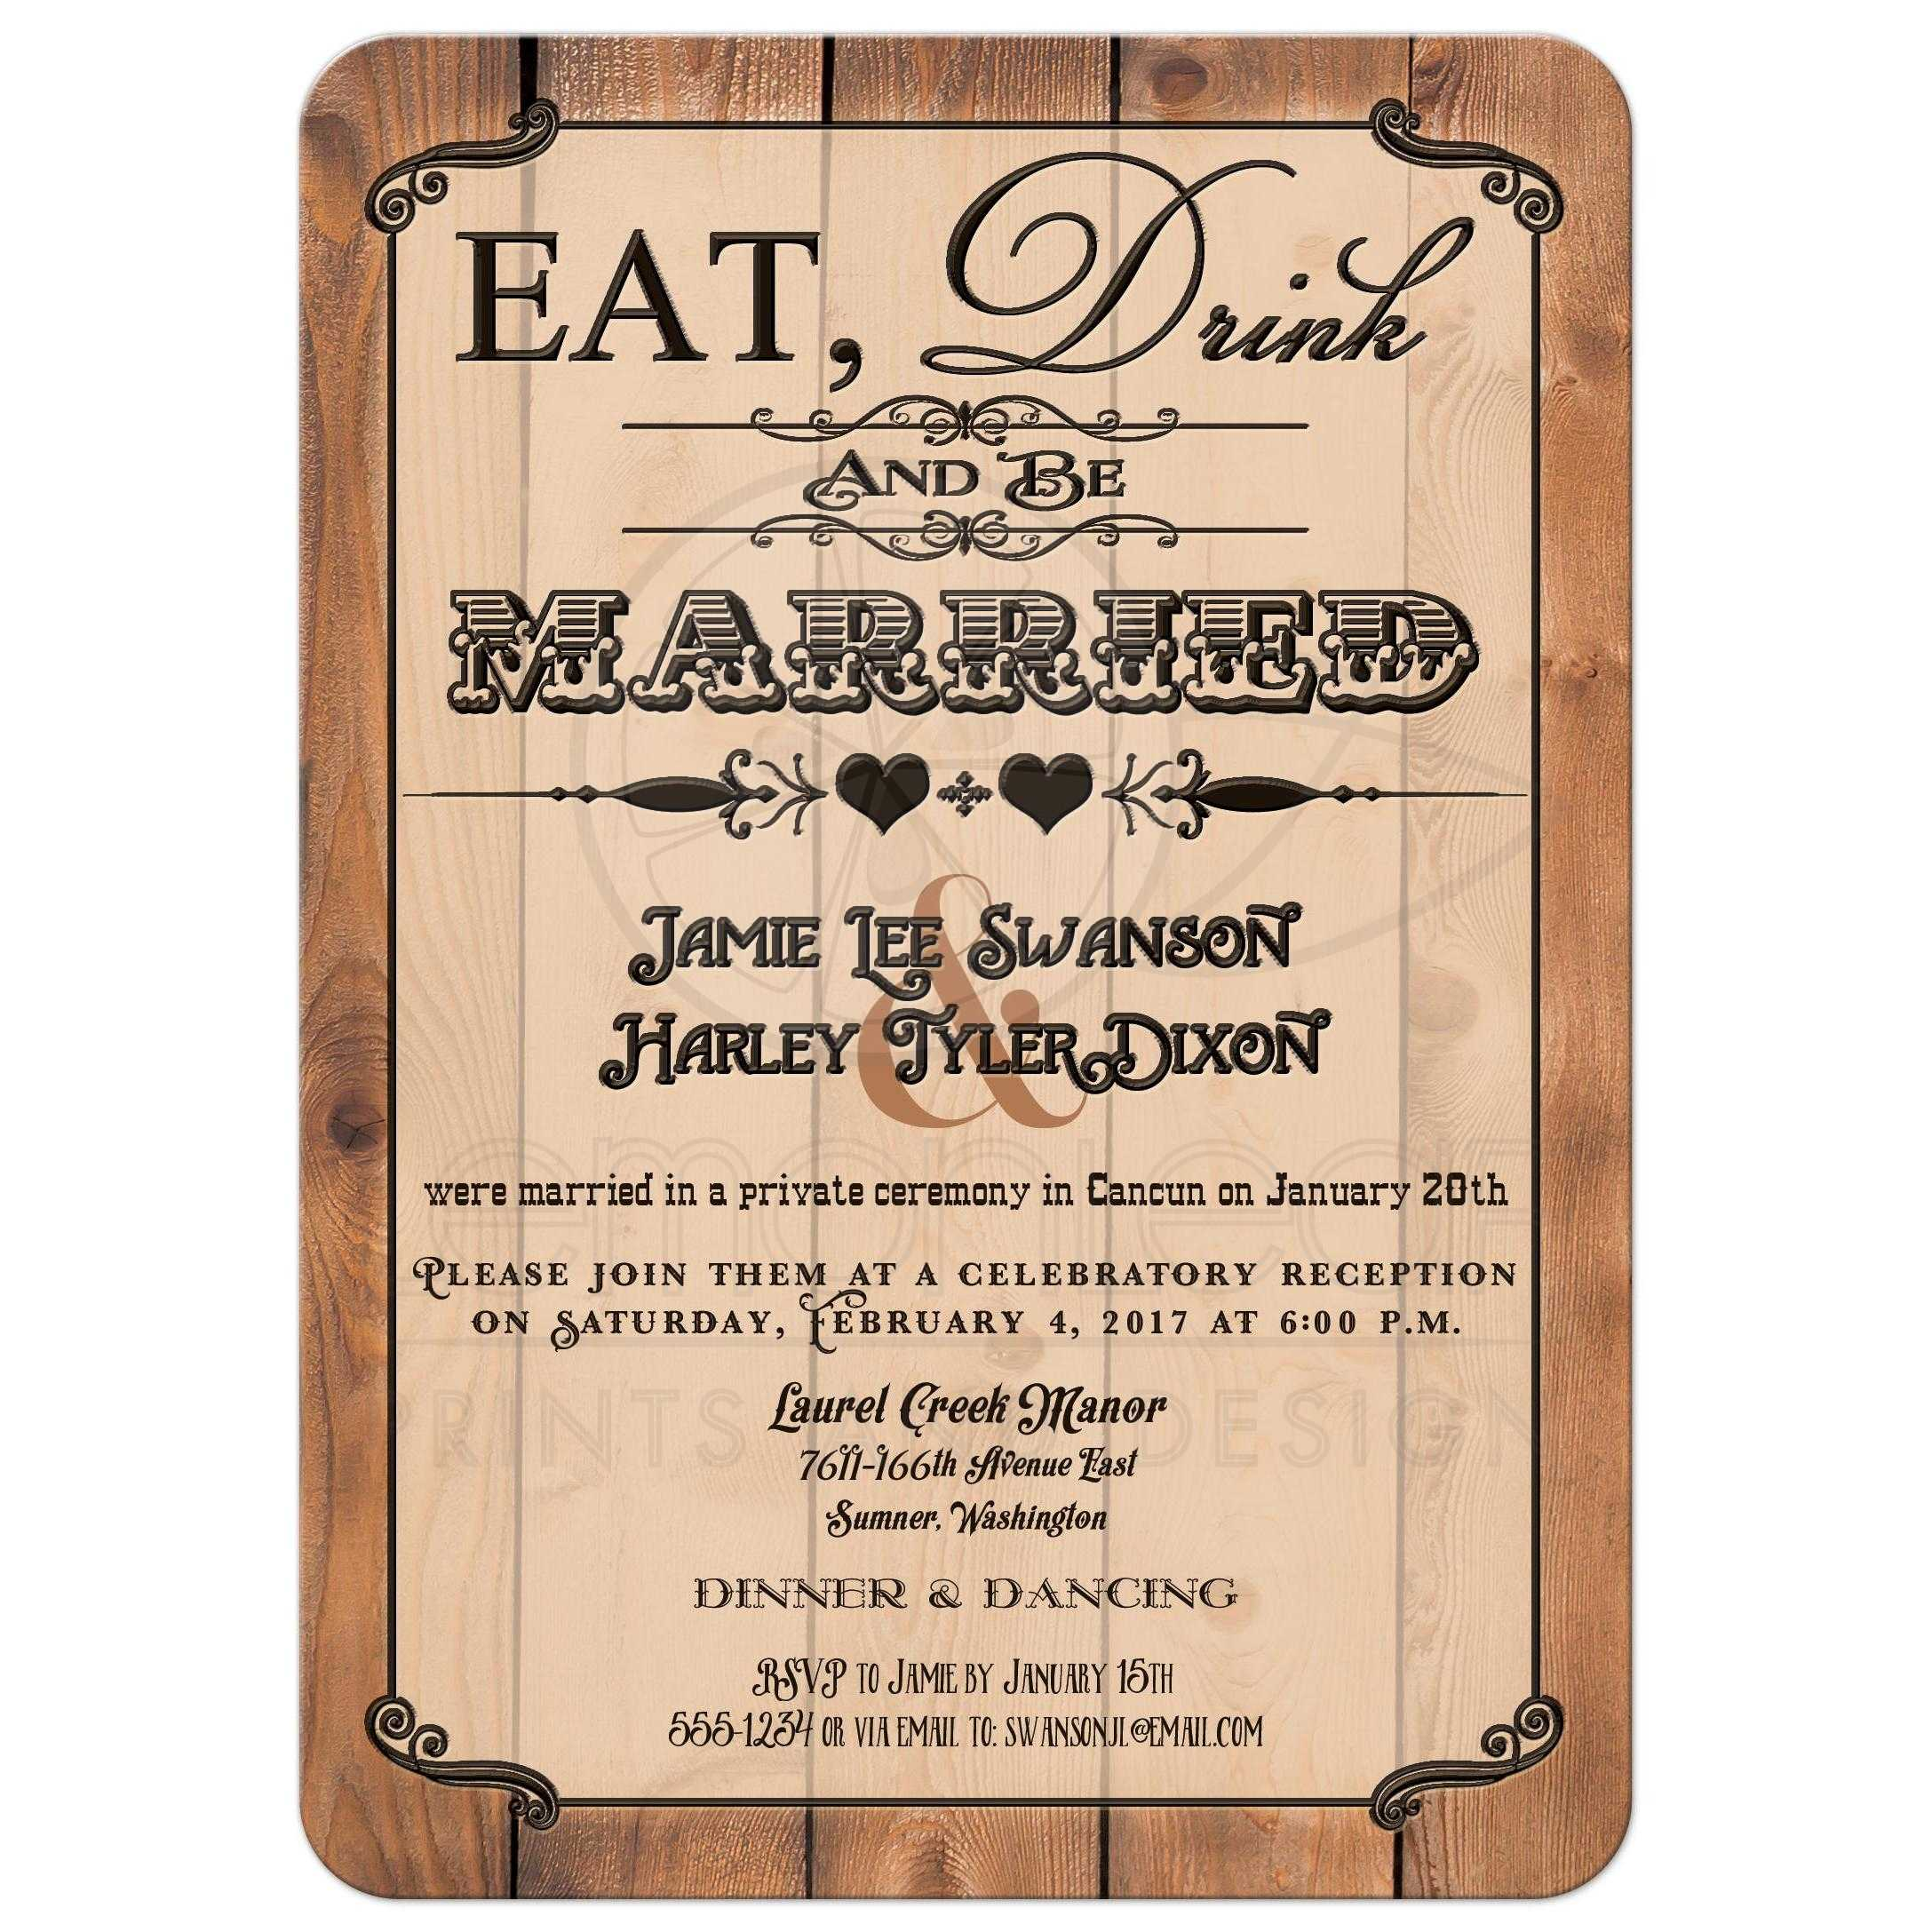 Wedding Reception Invitation Wording Funny: Post Wedding Reception Only Invitation